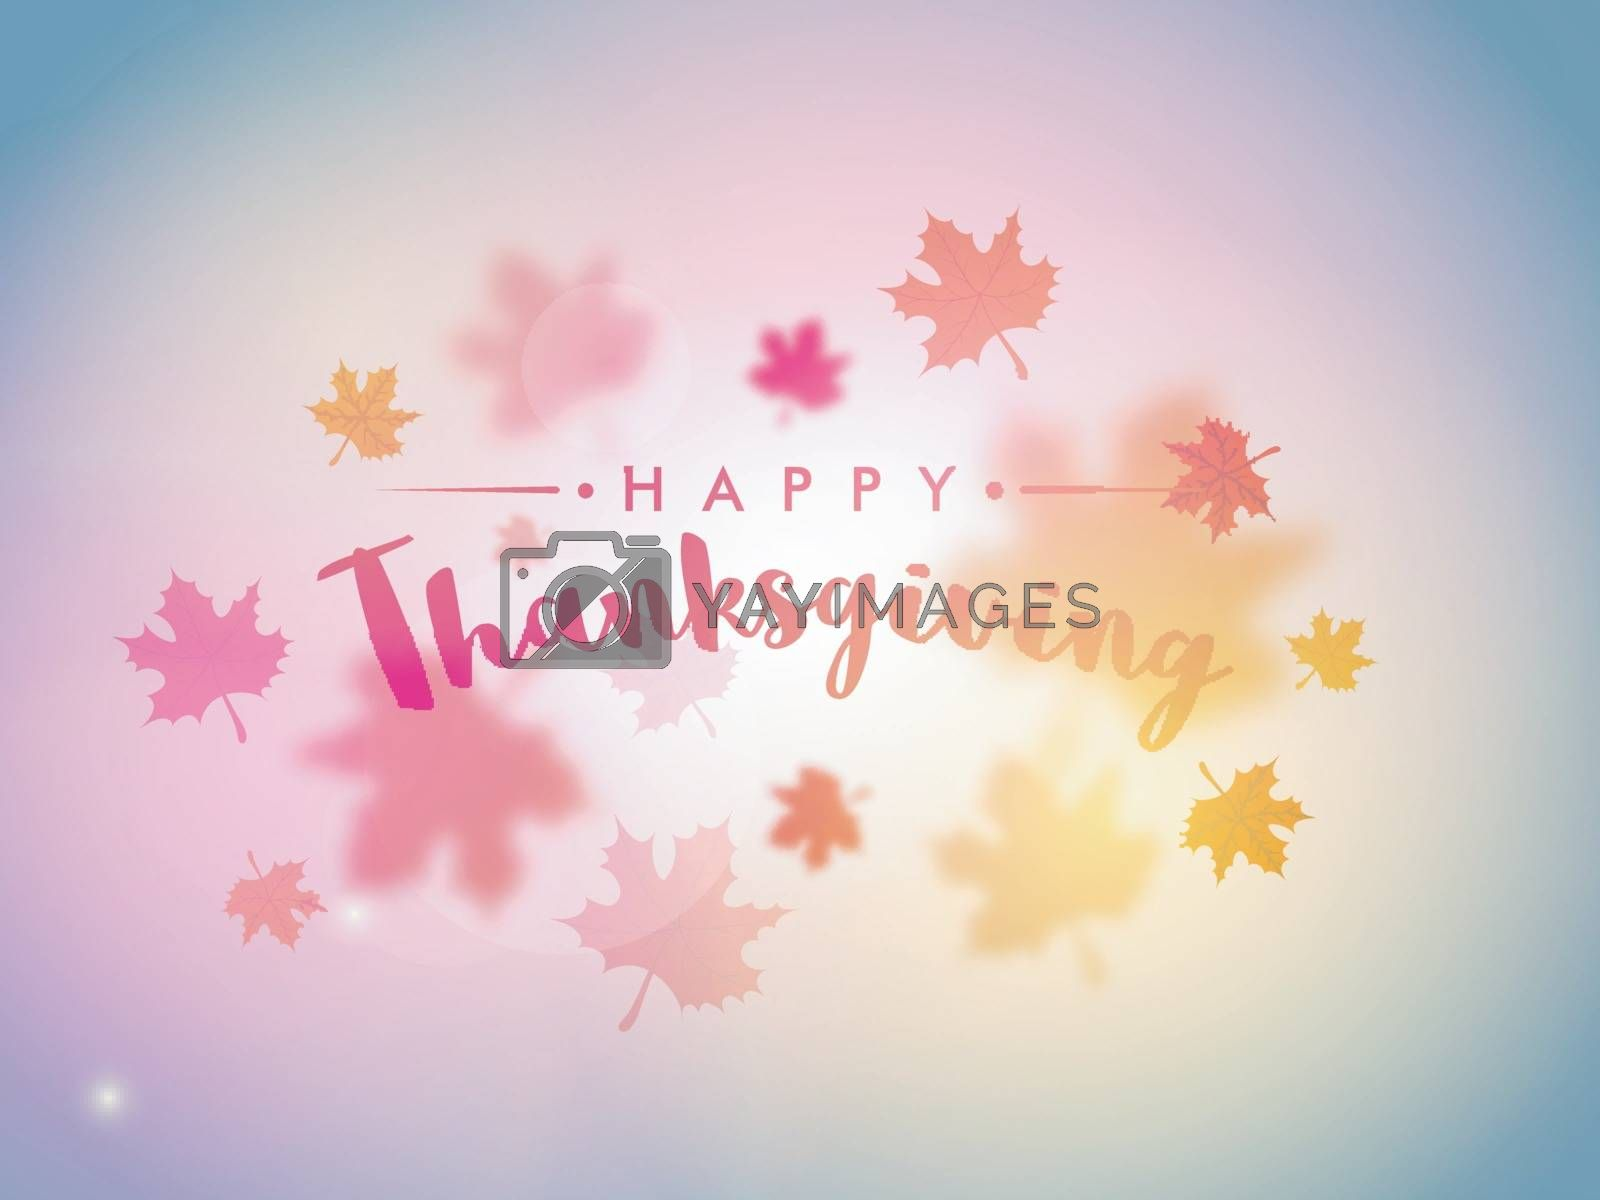 Colorful maple leaves decorated shiny background for Happy Thanksgiving Day celebration.